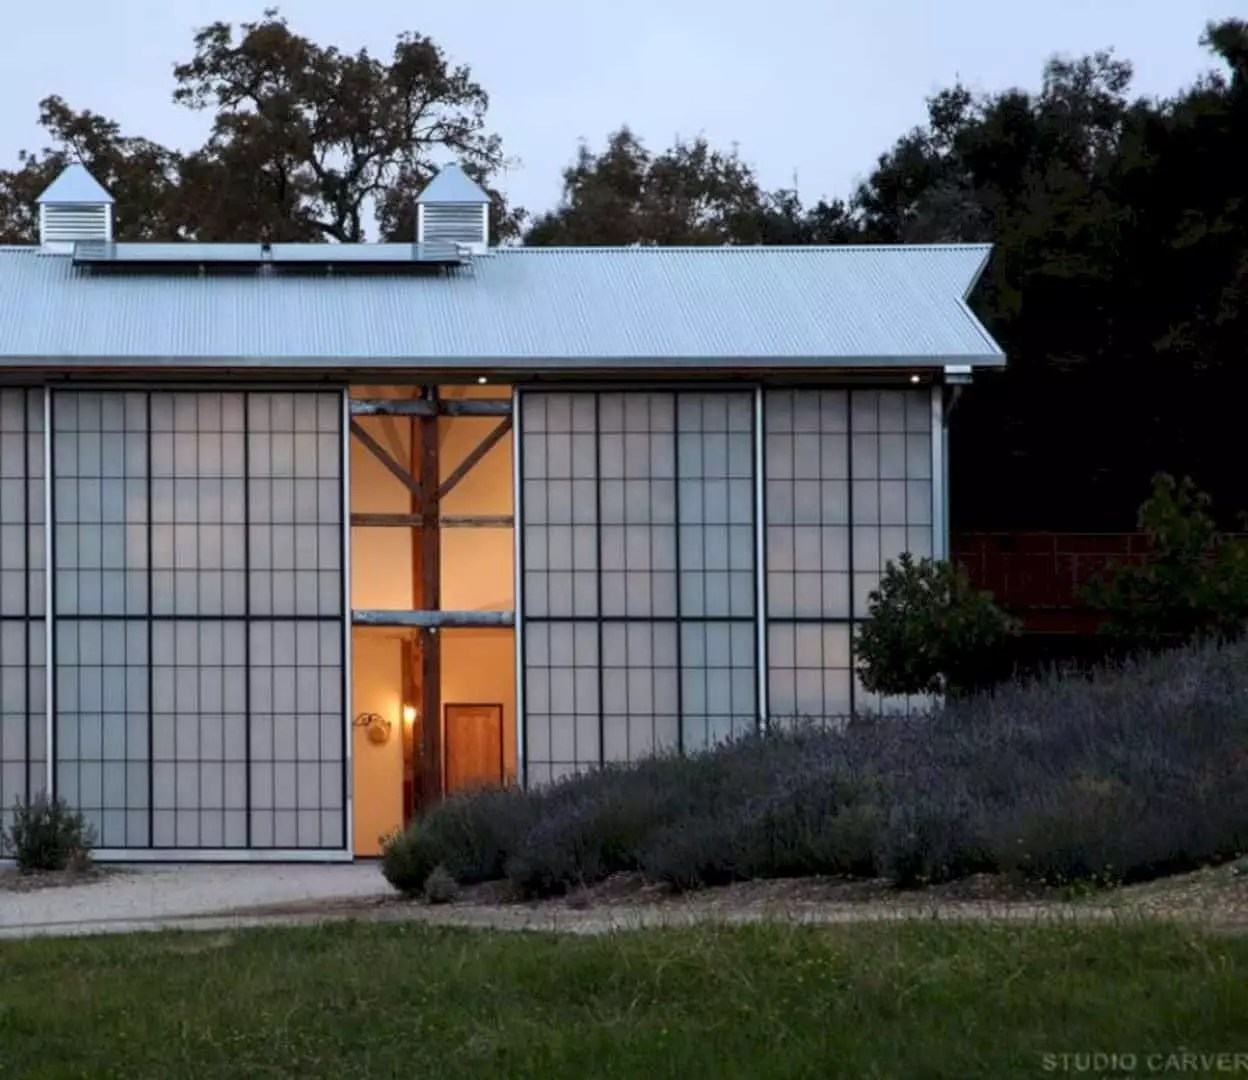 Santa Ynez Barn: A Large Barn With Translucent Structural